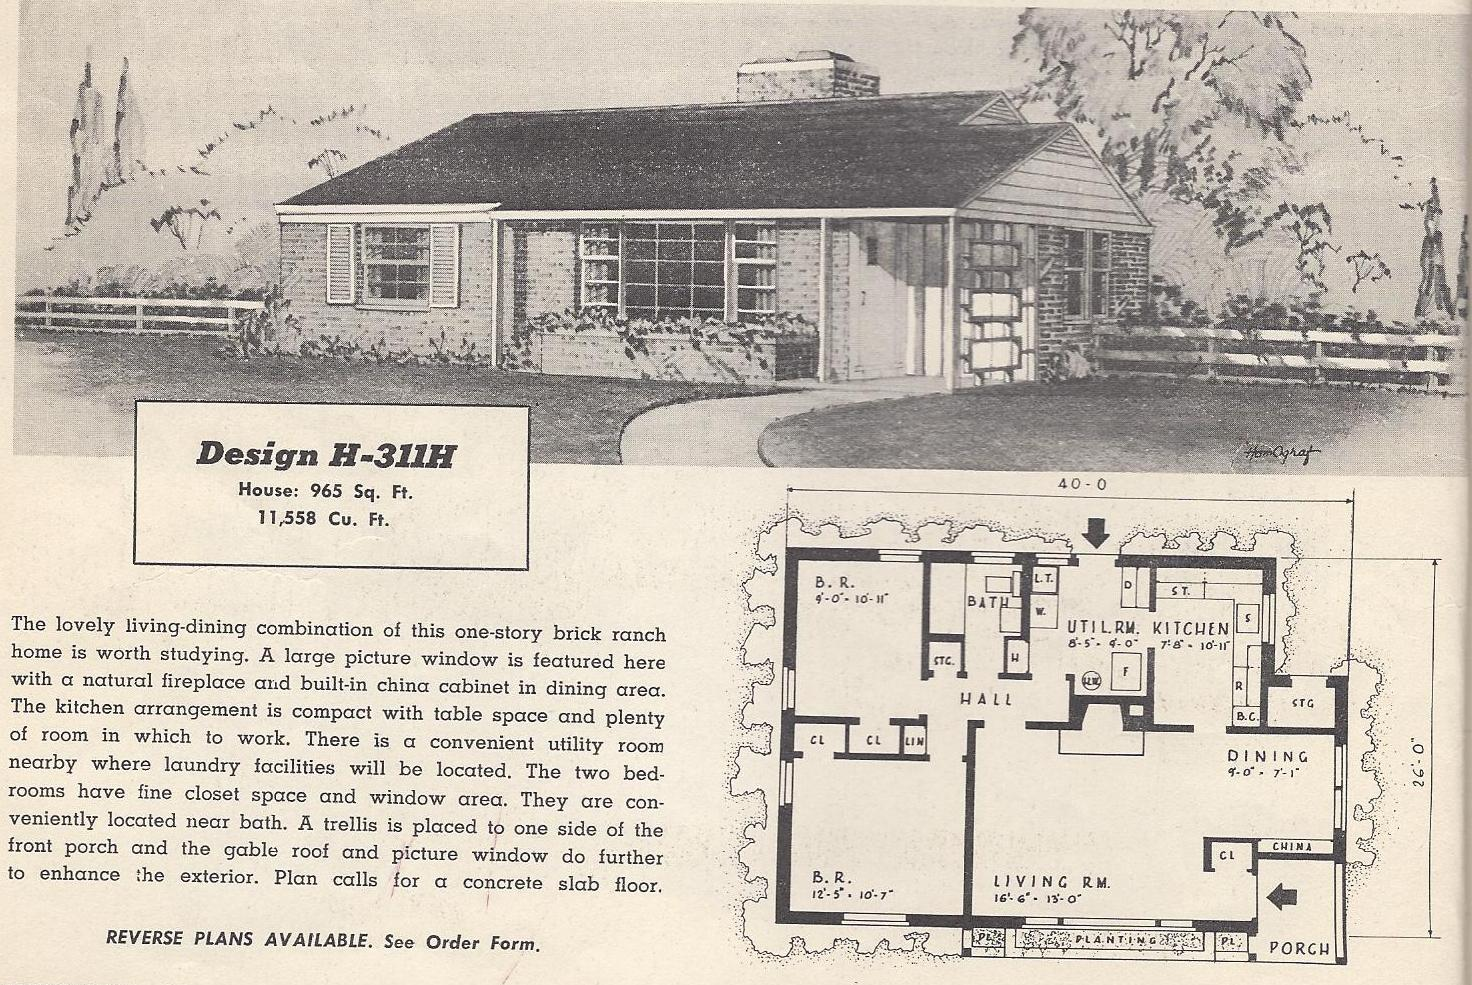 Vintage house plans 311h antique alter ego - Retro home design ...